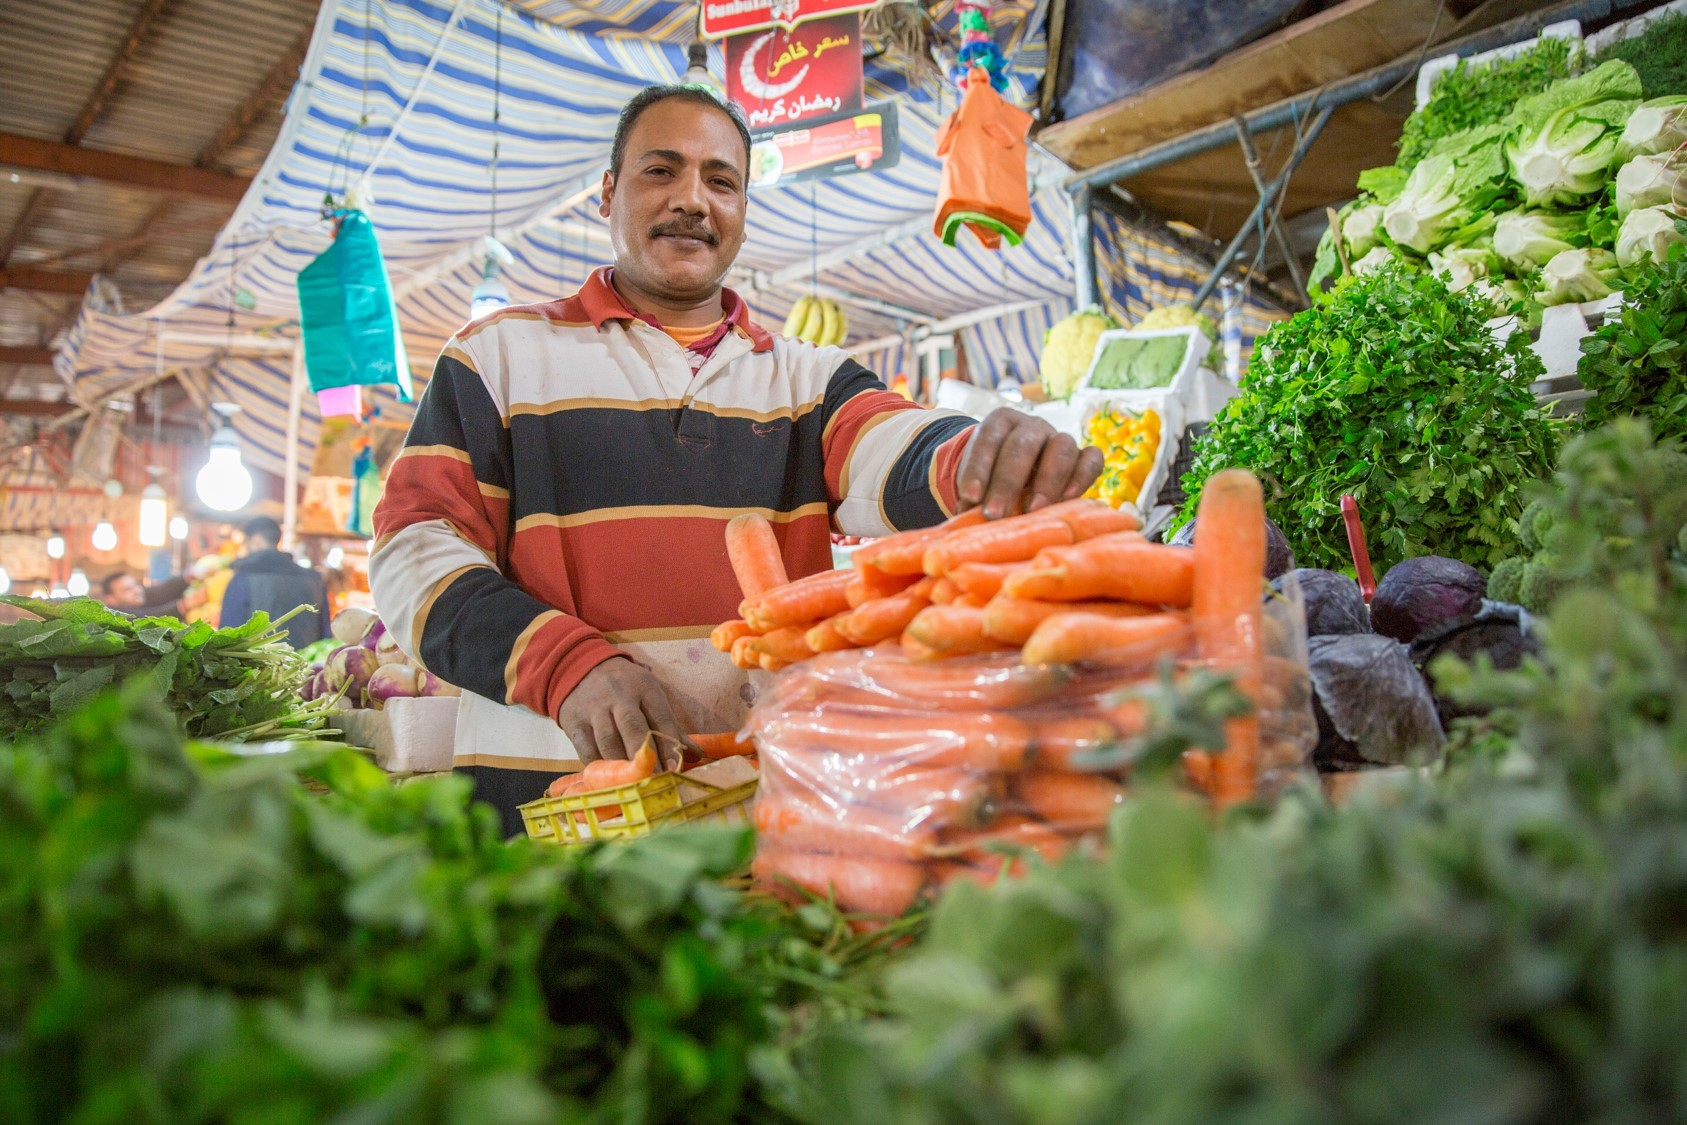 Safeguarding the availability of fresh fruit and vegetables in the Middle East and North Africa